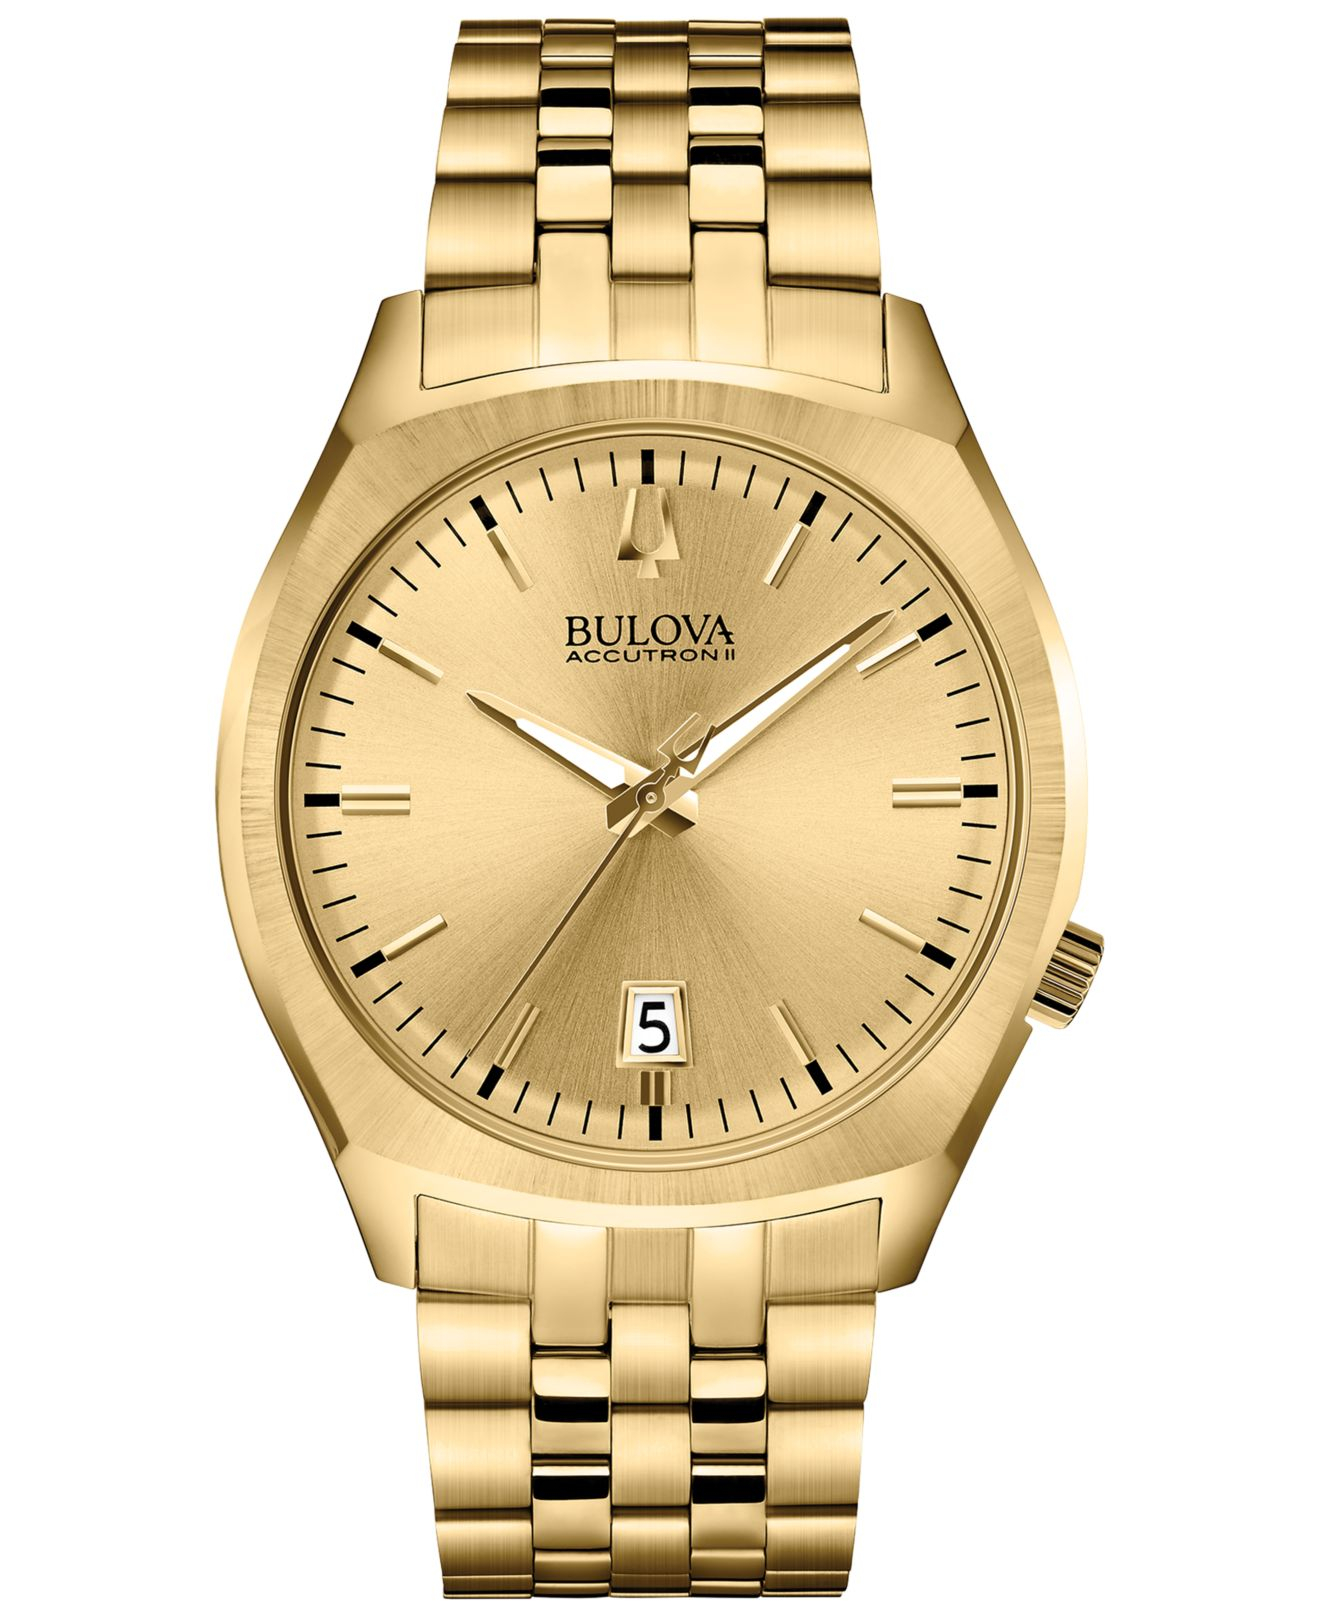 bulova s surveyor gold tone stainless steel bracelet